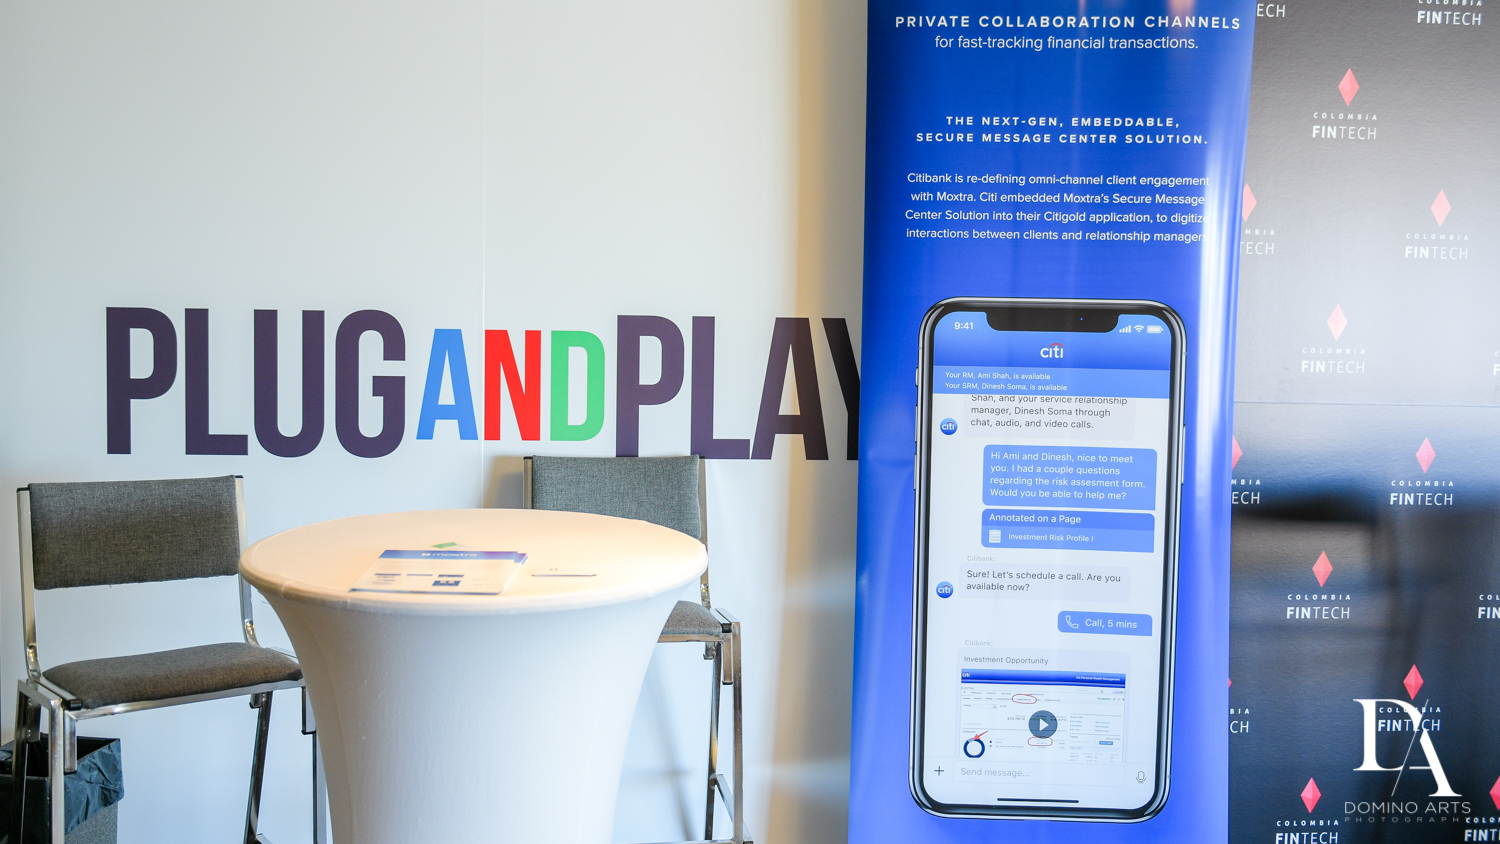 booth at Fintech Americas Banking Conference Miami by Domino Arts Photography